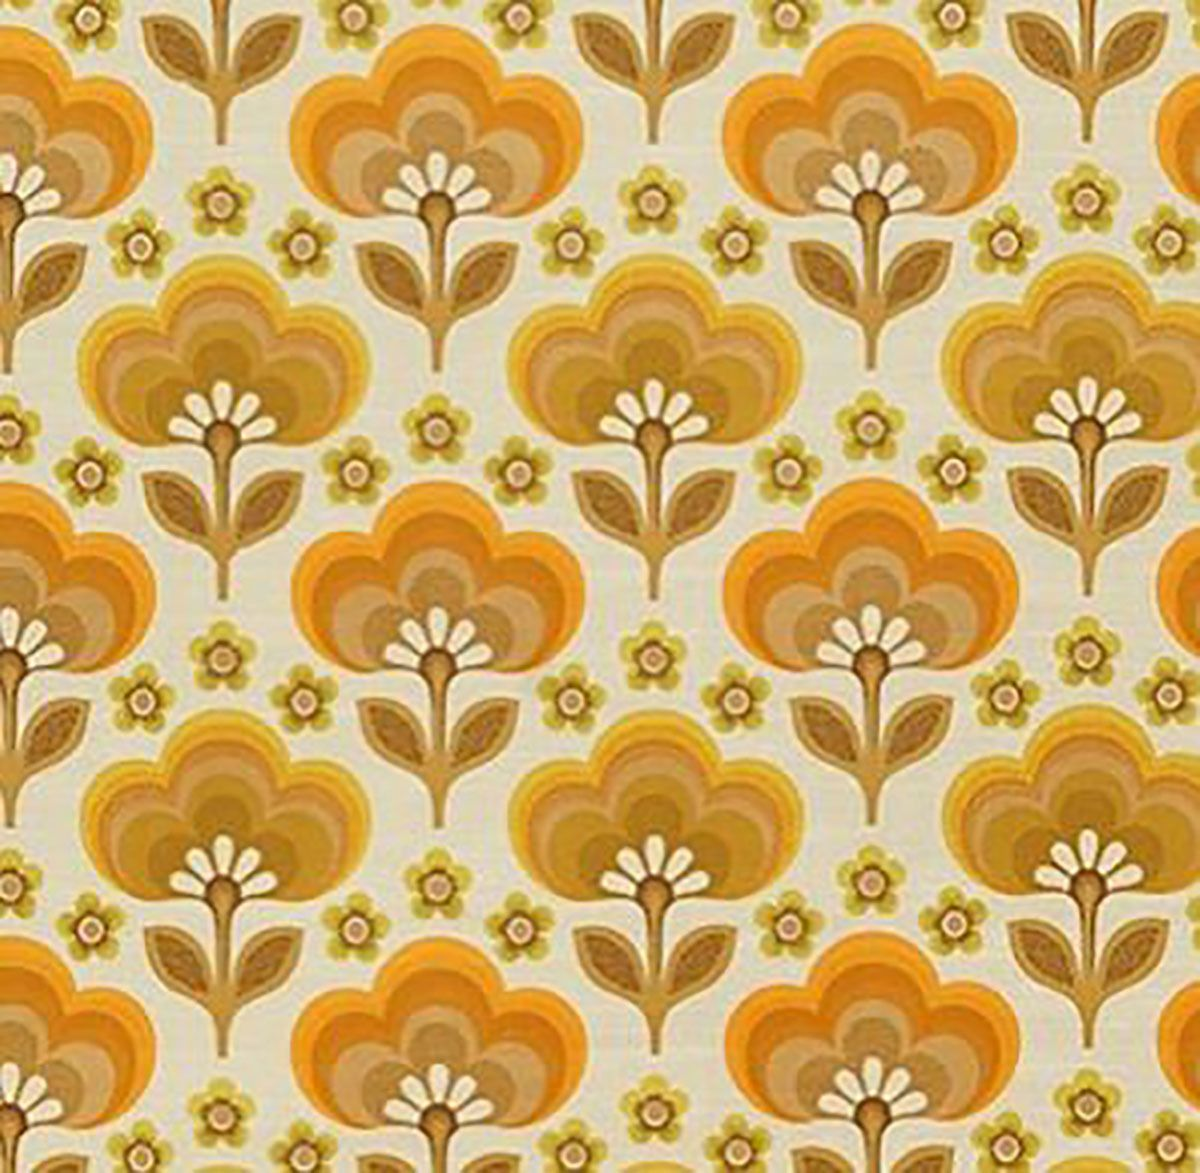 Home & Garden Vintage 20s 20s Psychedelic Wallpaper Roll ...